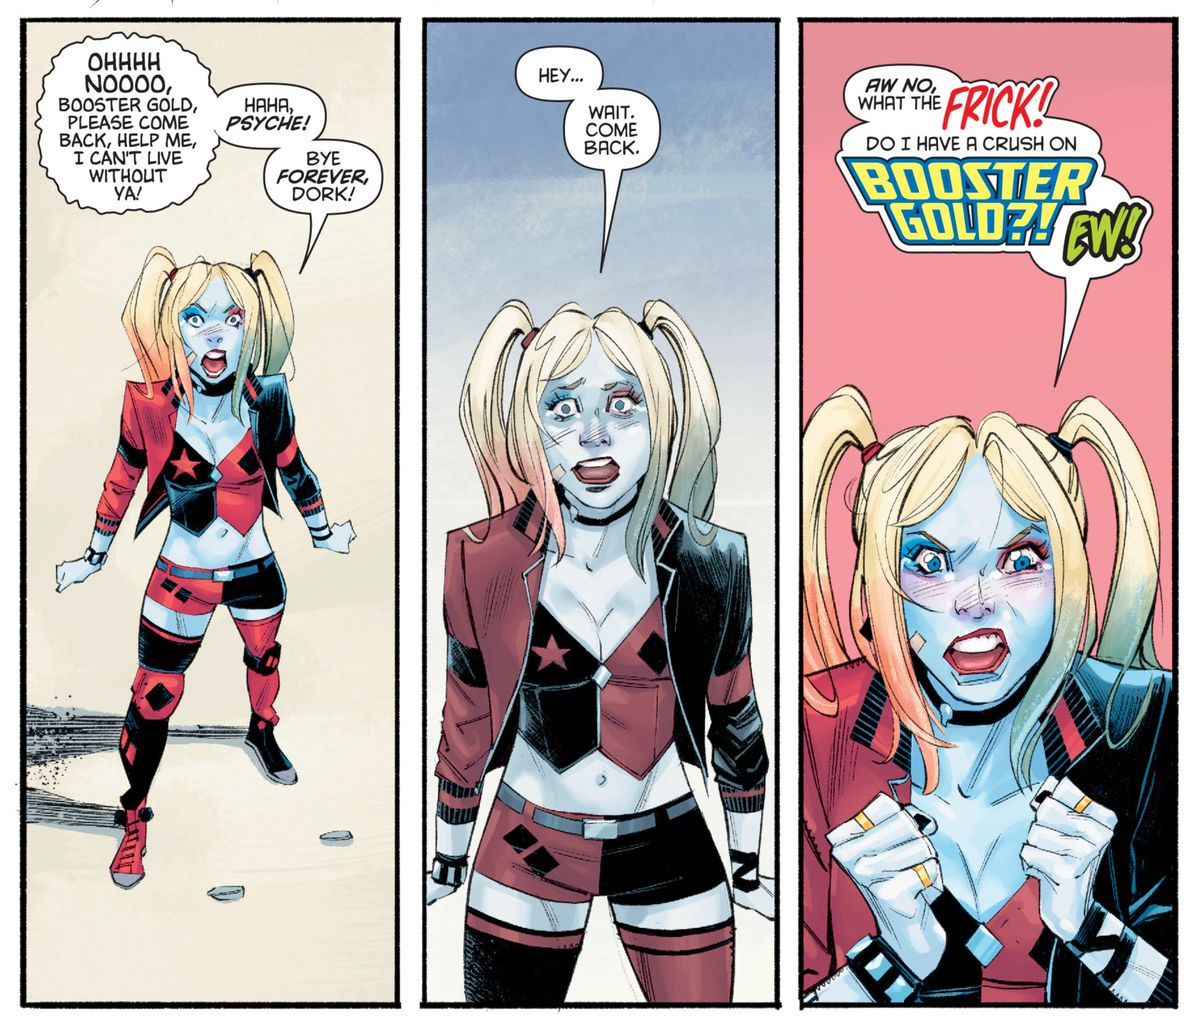 """Harley becomes angry at Boole Gold as he comes out, and then switches tack. """"Hey ... Wait. Come back. Well, what kind! she screams."""